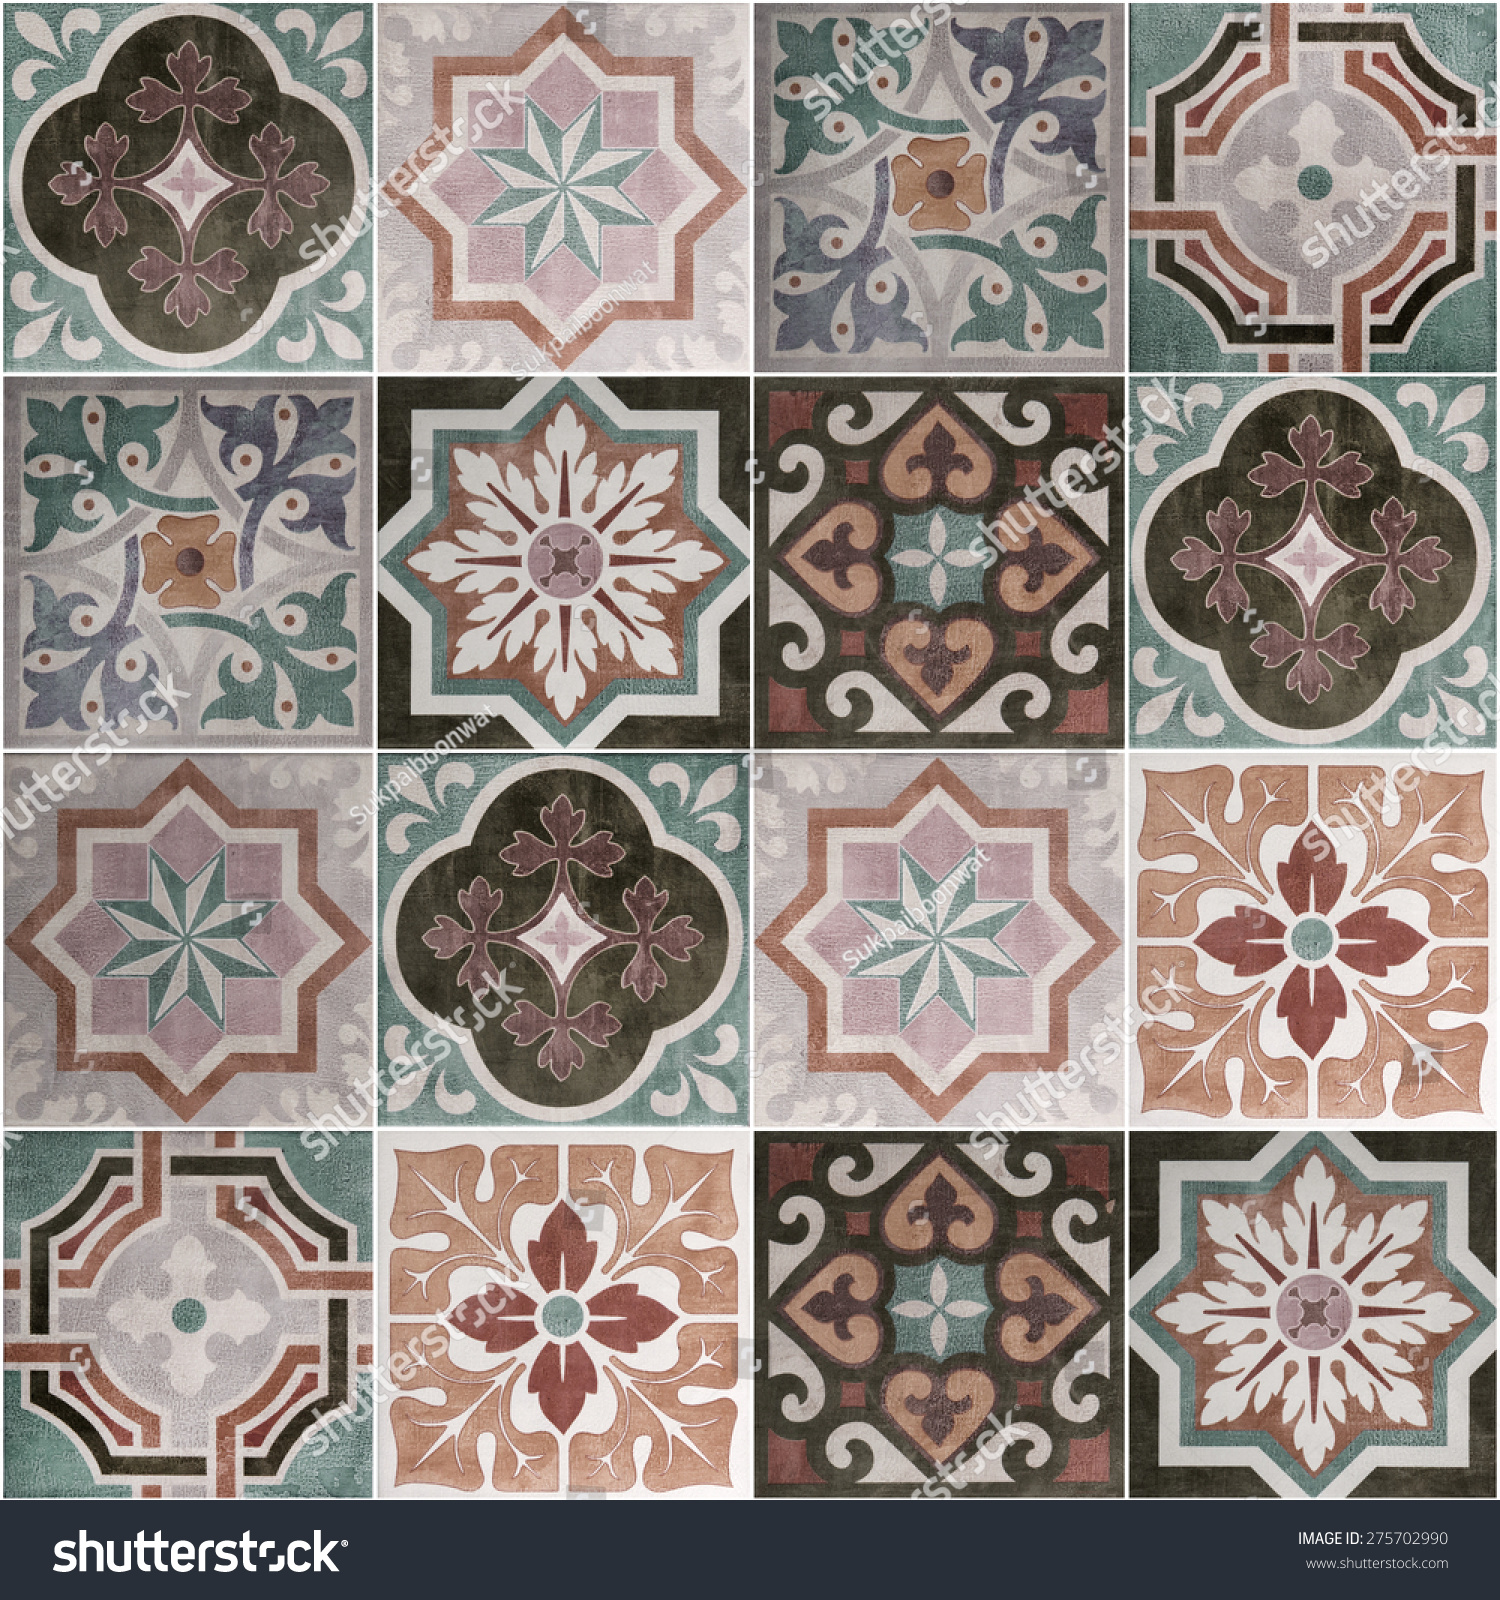 Ceramic tiles patterns from portugal stock photo for Ceramic patterns designs